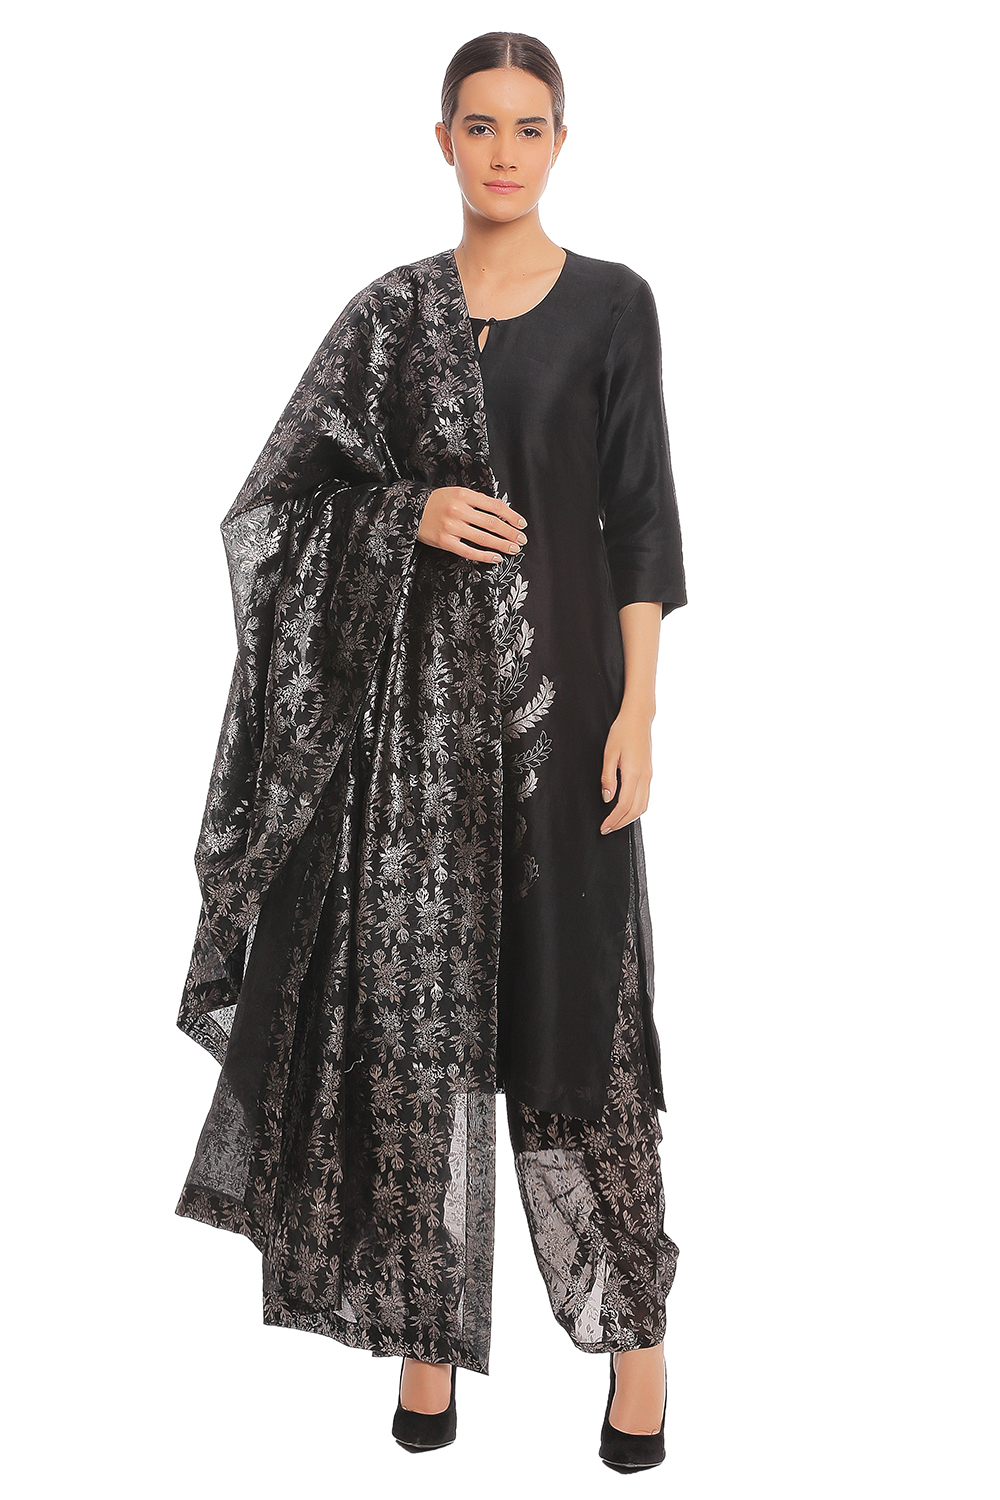 33c04f8c94 Indian, Black Leaf Kurta with Blooming Garden Dupatta & Salwar